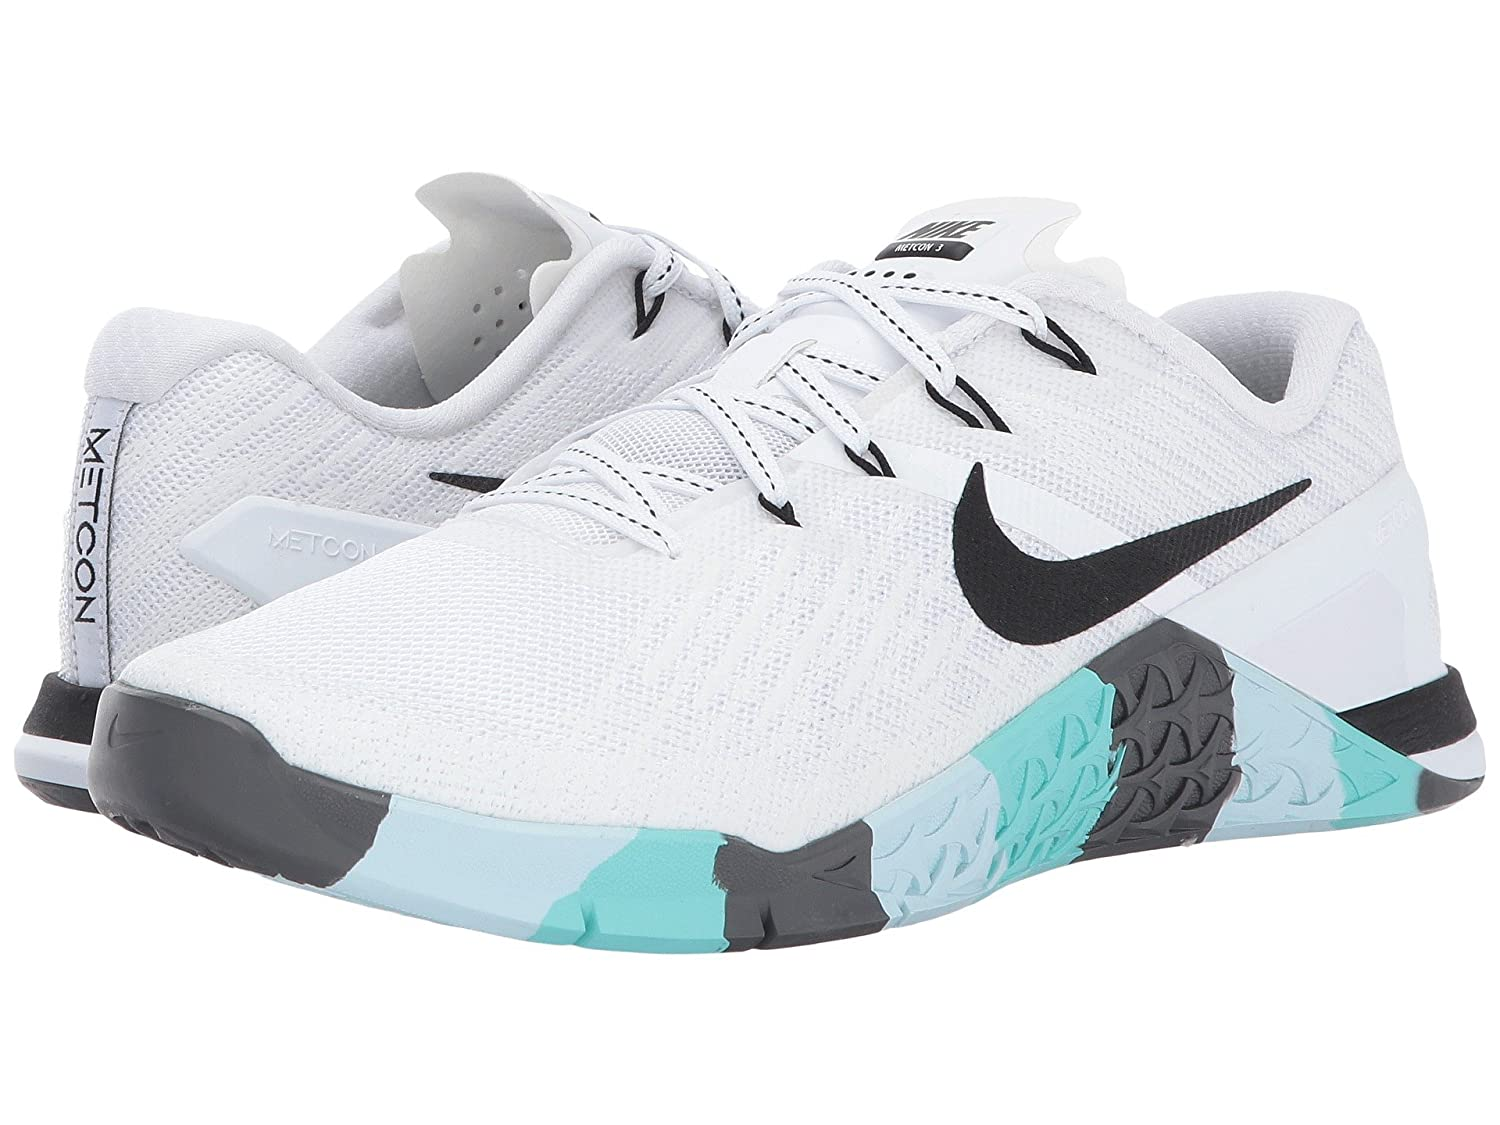 fb0730093ab0 Nike Womens Metcon 3 Training Shoes (White Black Dark-Grey Teal